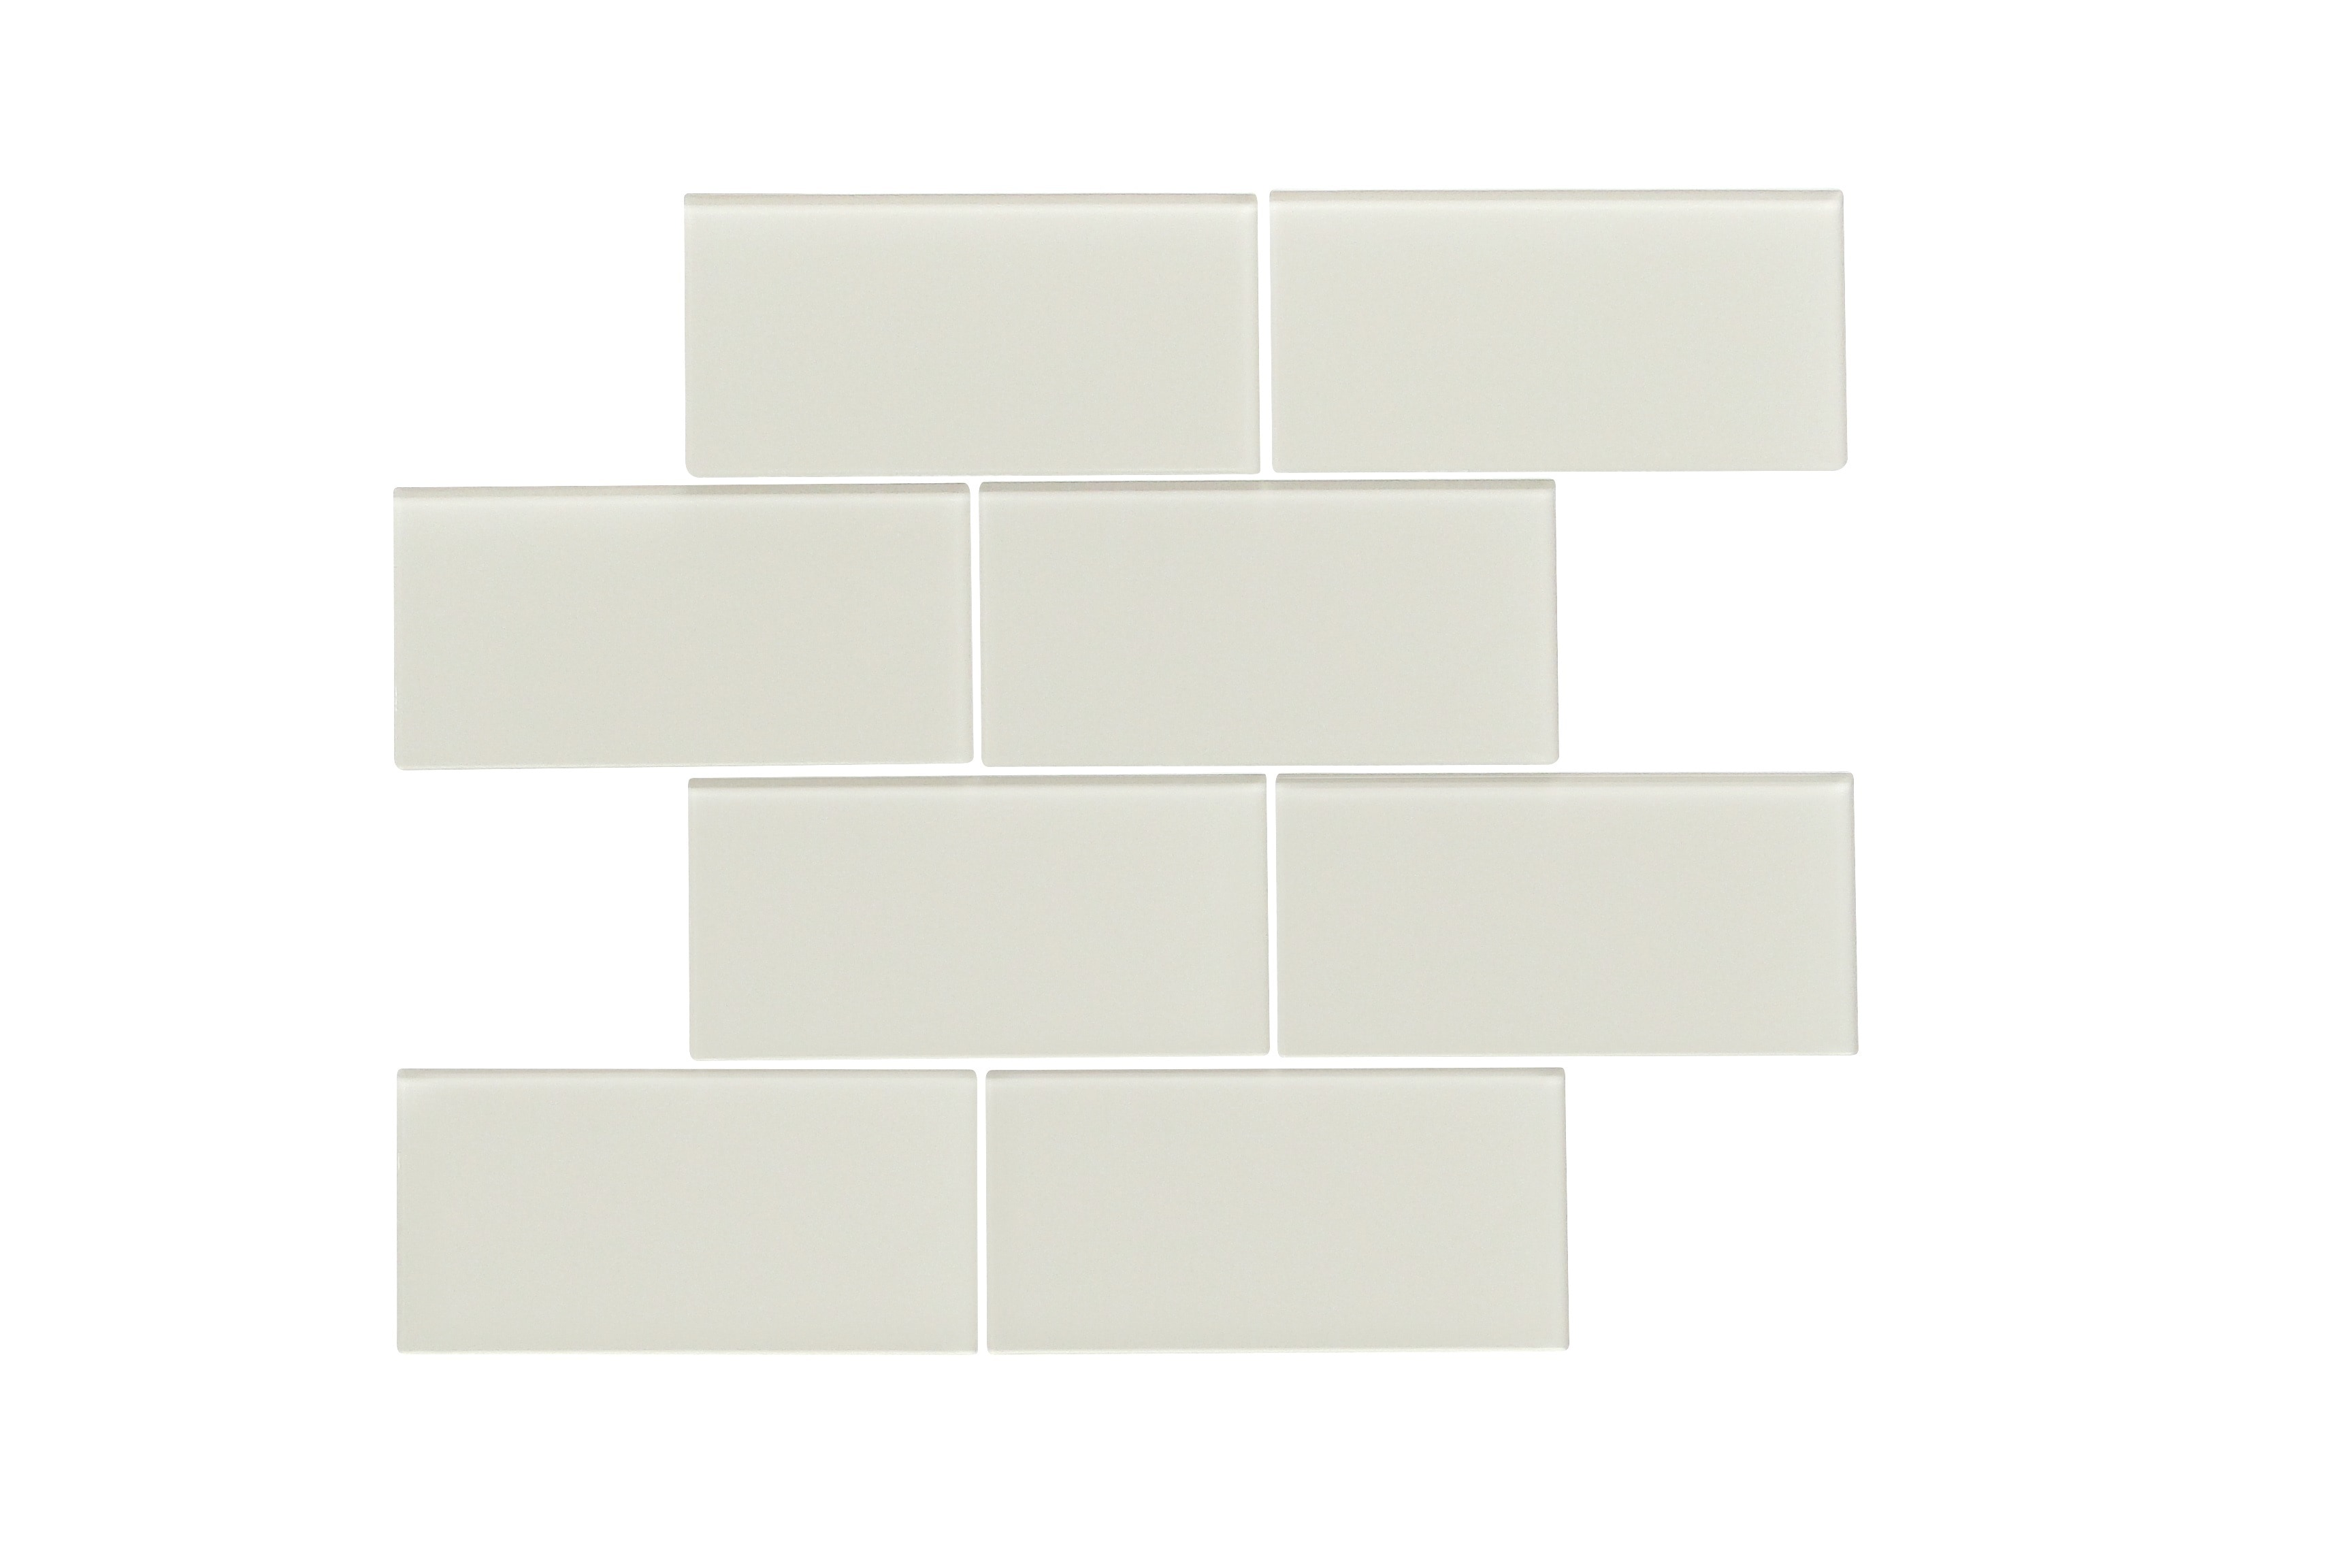 """Glass Mosaic / 16 x 12 x 0.16 inches / Glossy Large 3"""" X 6"""" X 4mm Glass Subway Mosaic Tile In Icy Gray 0"""